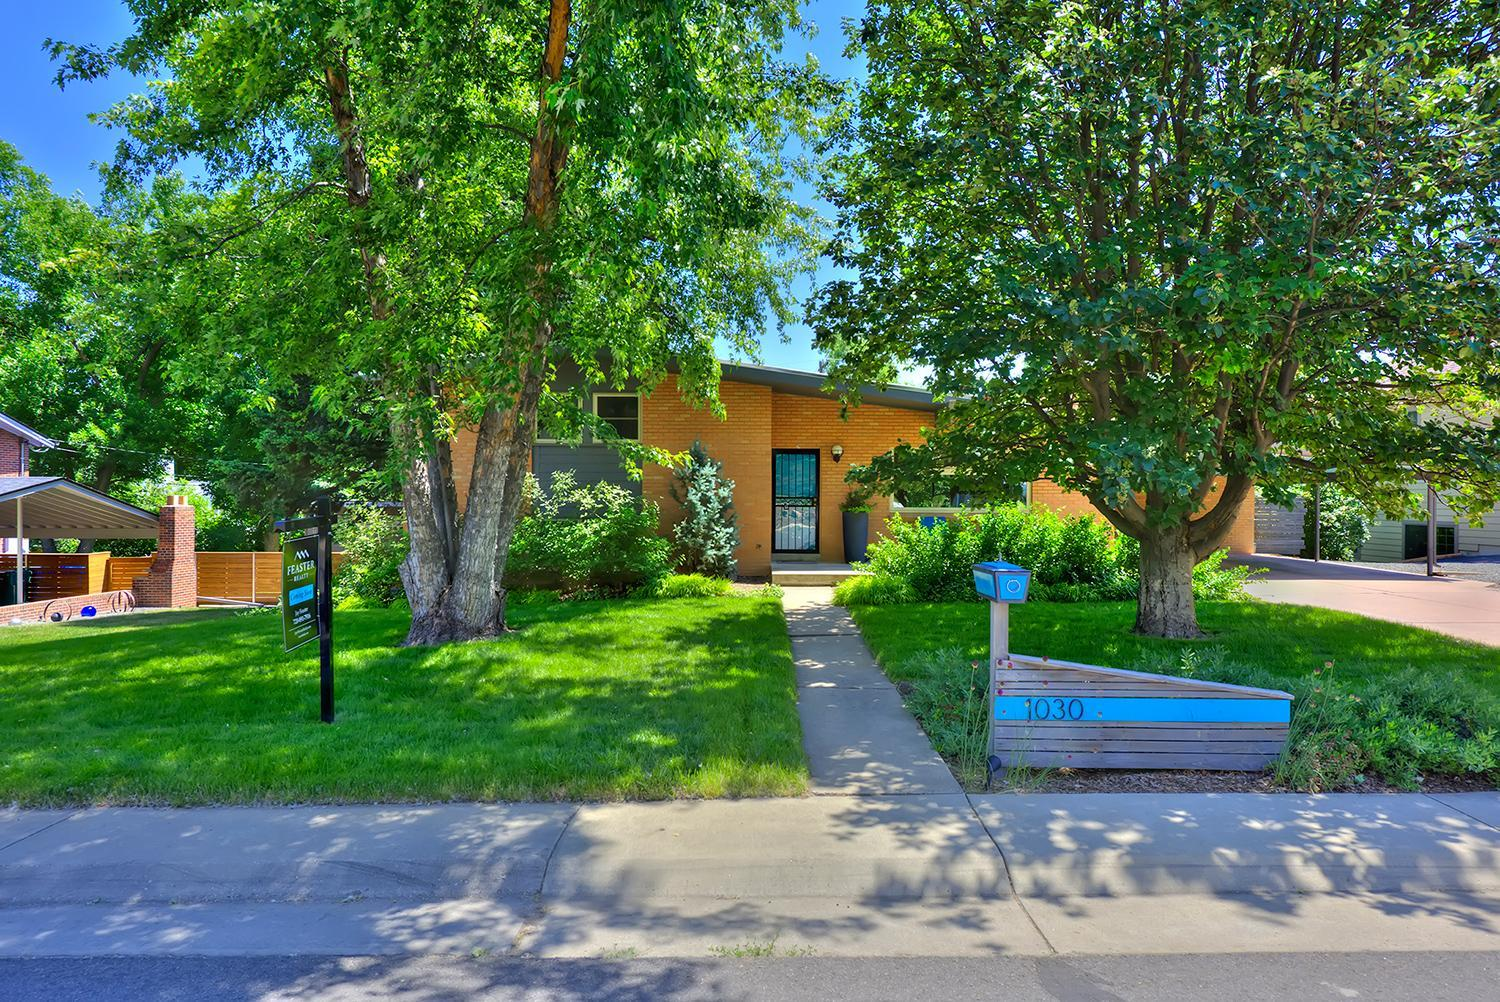 Chic, Mid-Century Modern Home for Sale in Golden, CO